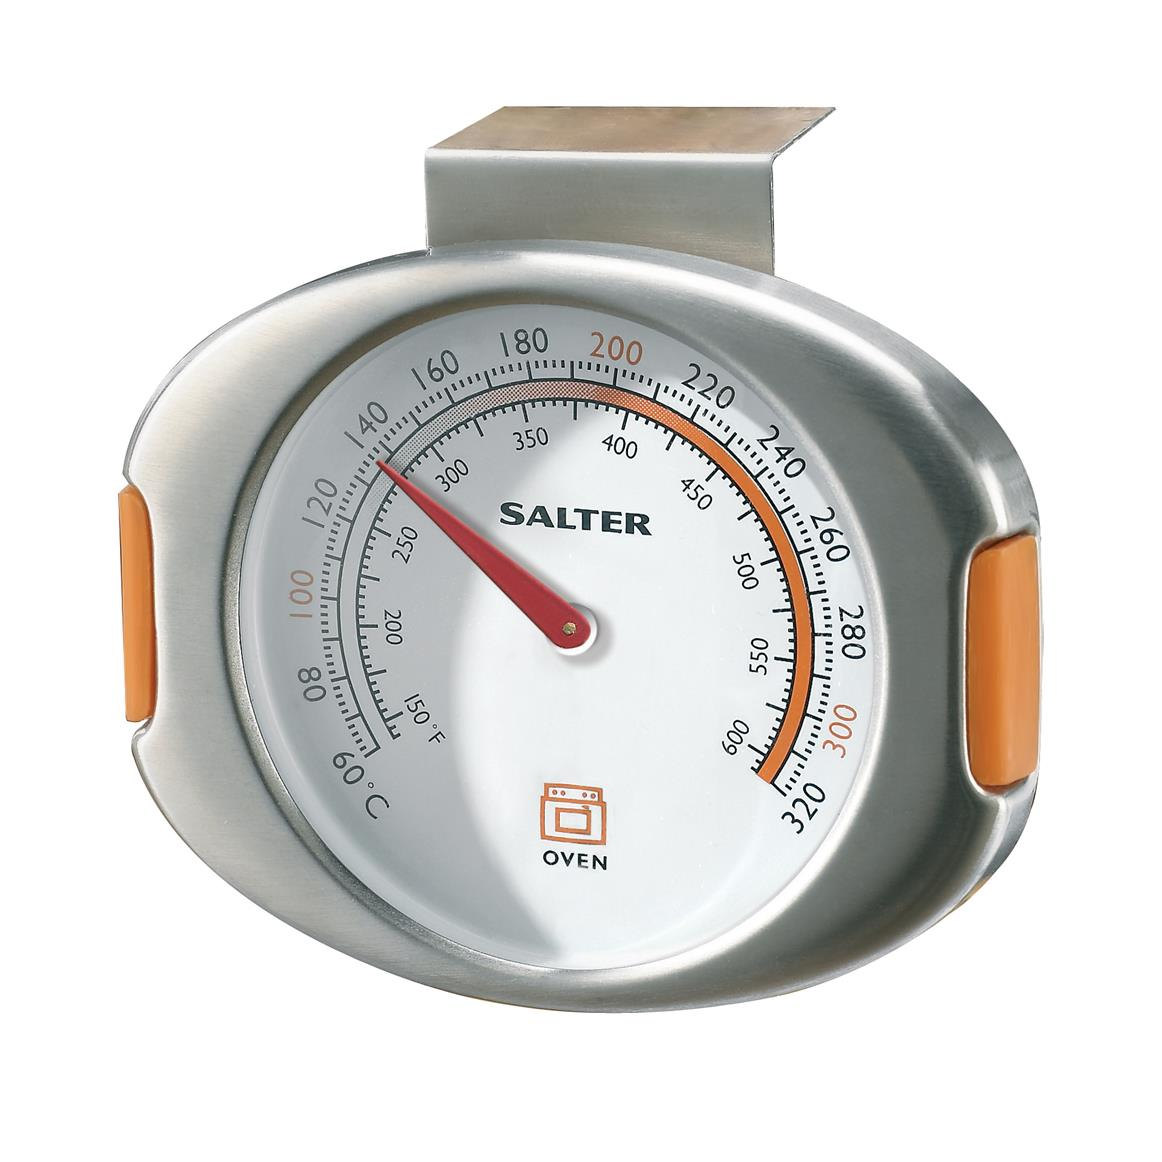 Salter Gourmet Kitchen Oven Thermometer @ RM 120